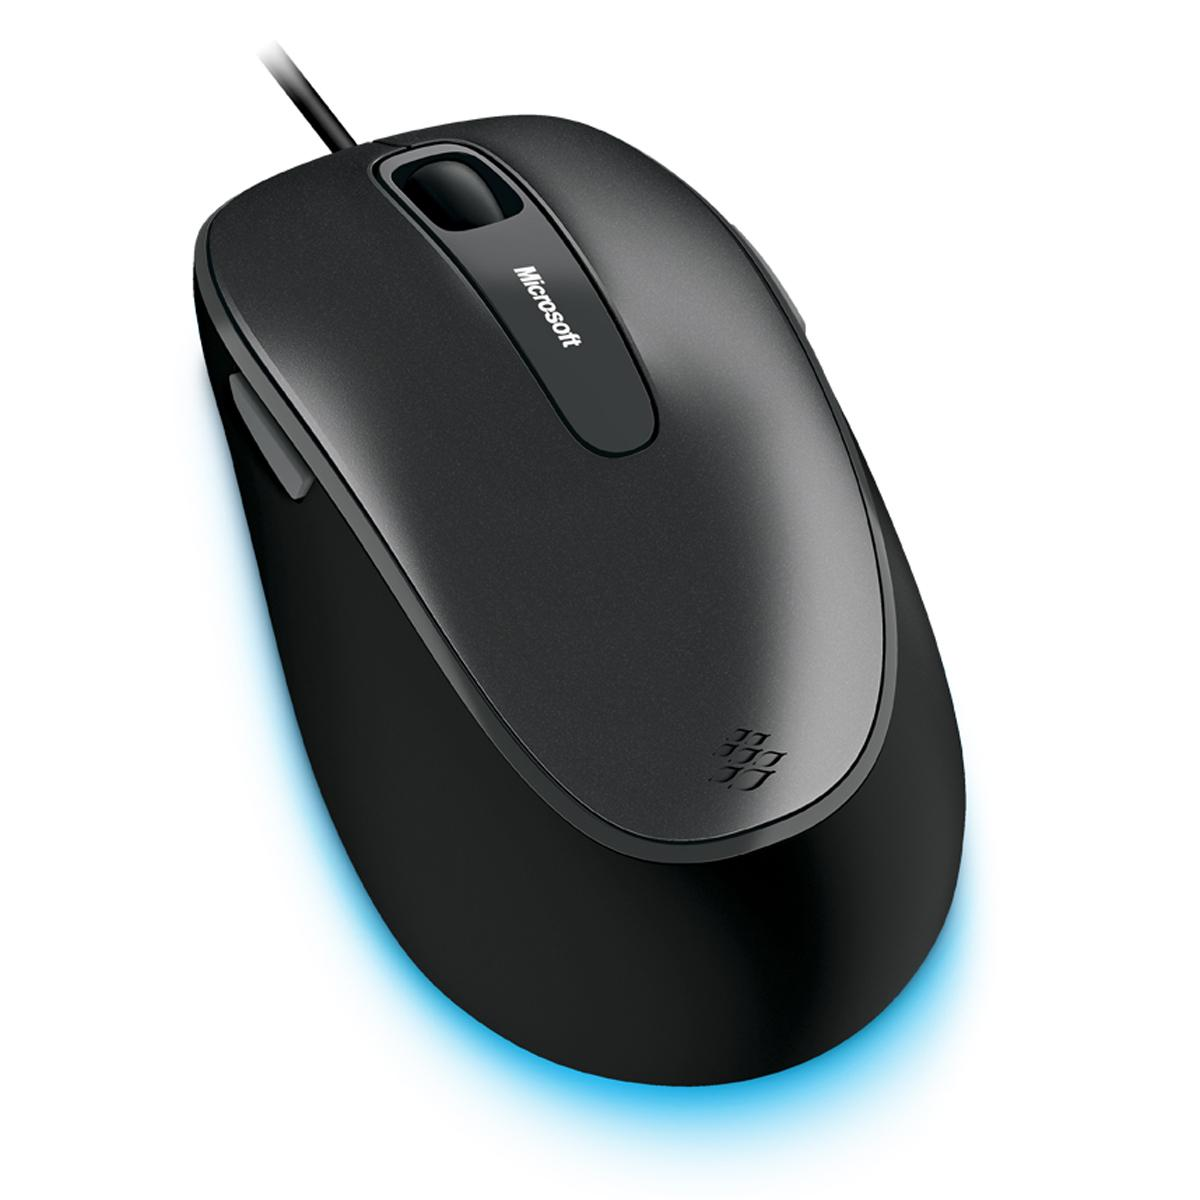 microsoft comfort mouse 4500 lochness gray computers accessories. Black Bedroom Furniture Sets. Home Design Ideas